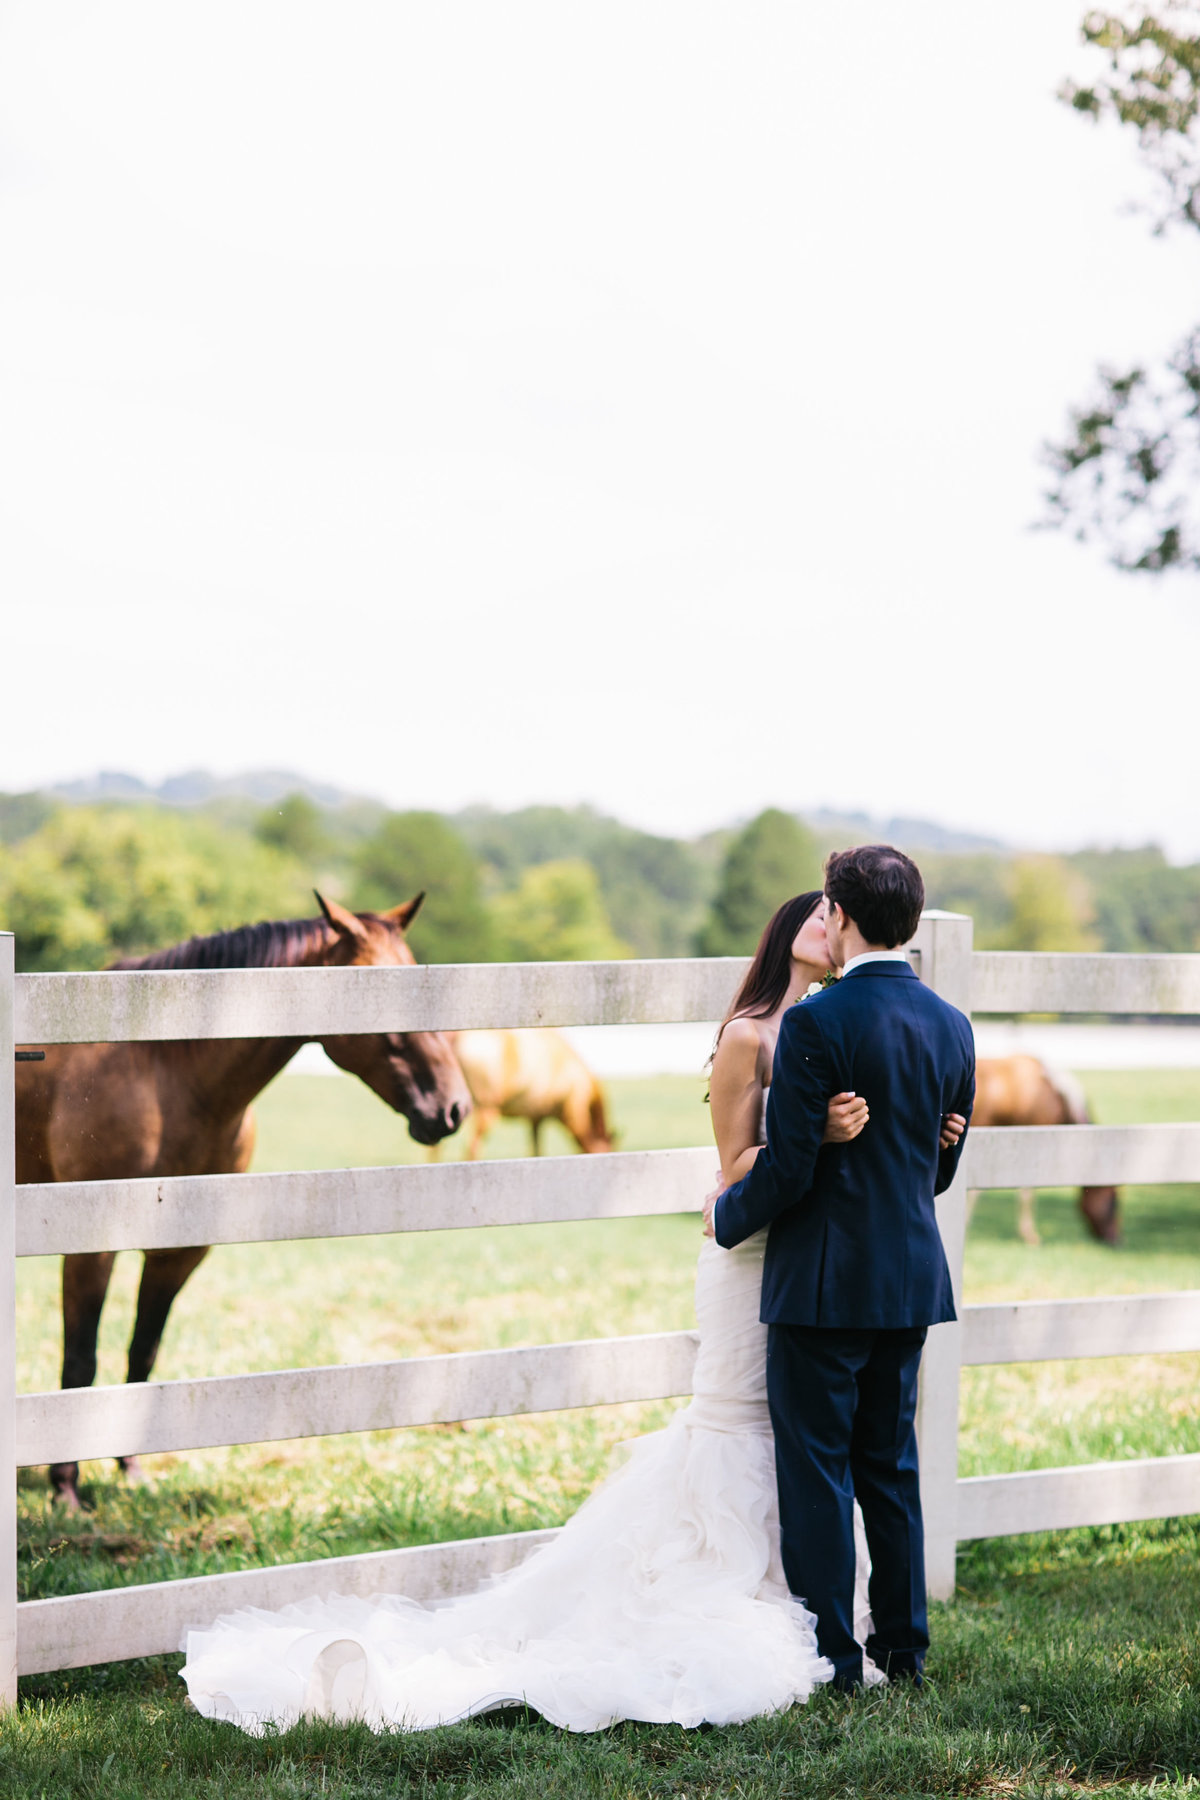 Fionnie_Jacob_Marblegate_Farm_Wedding_Knoxville_Abigail_Malone_Photography-415